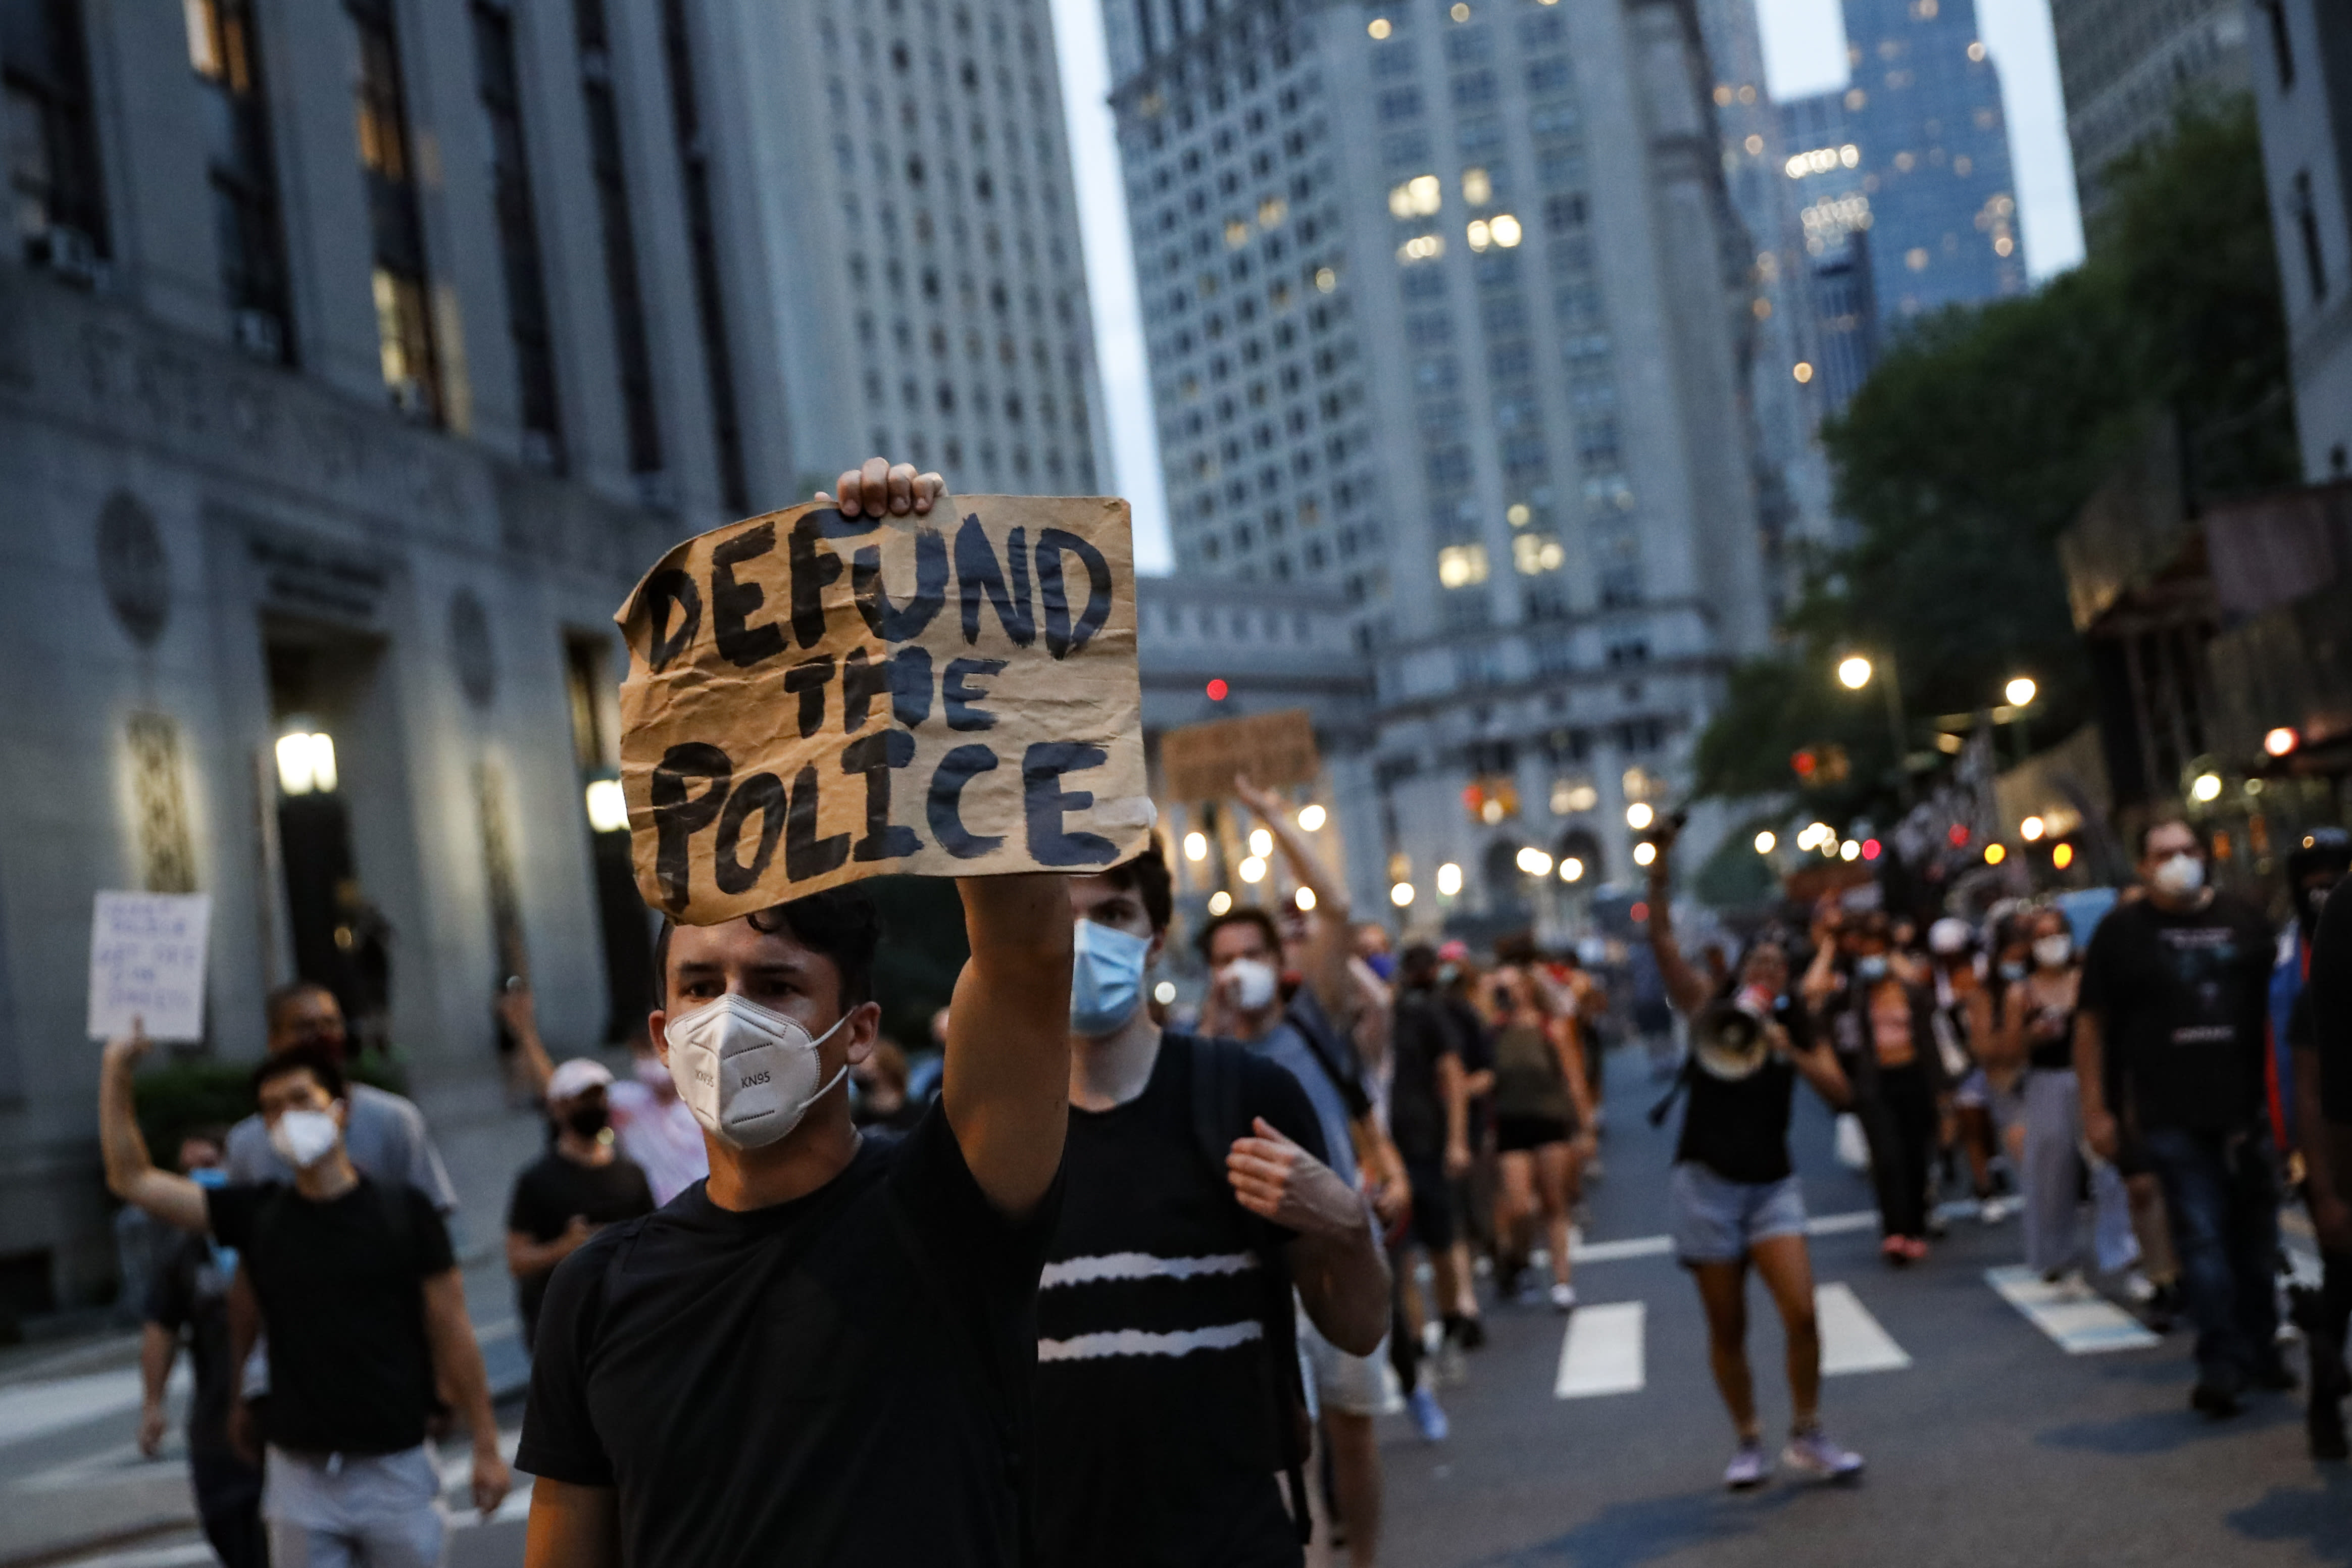 Cities move cautiously on defunding the police ...